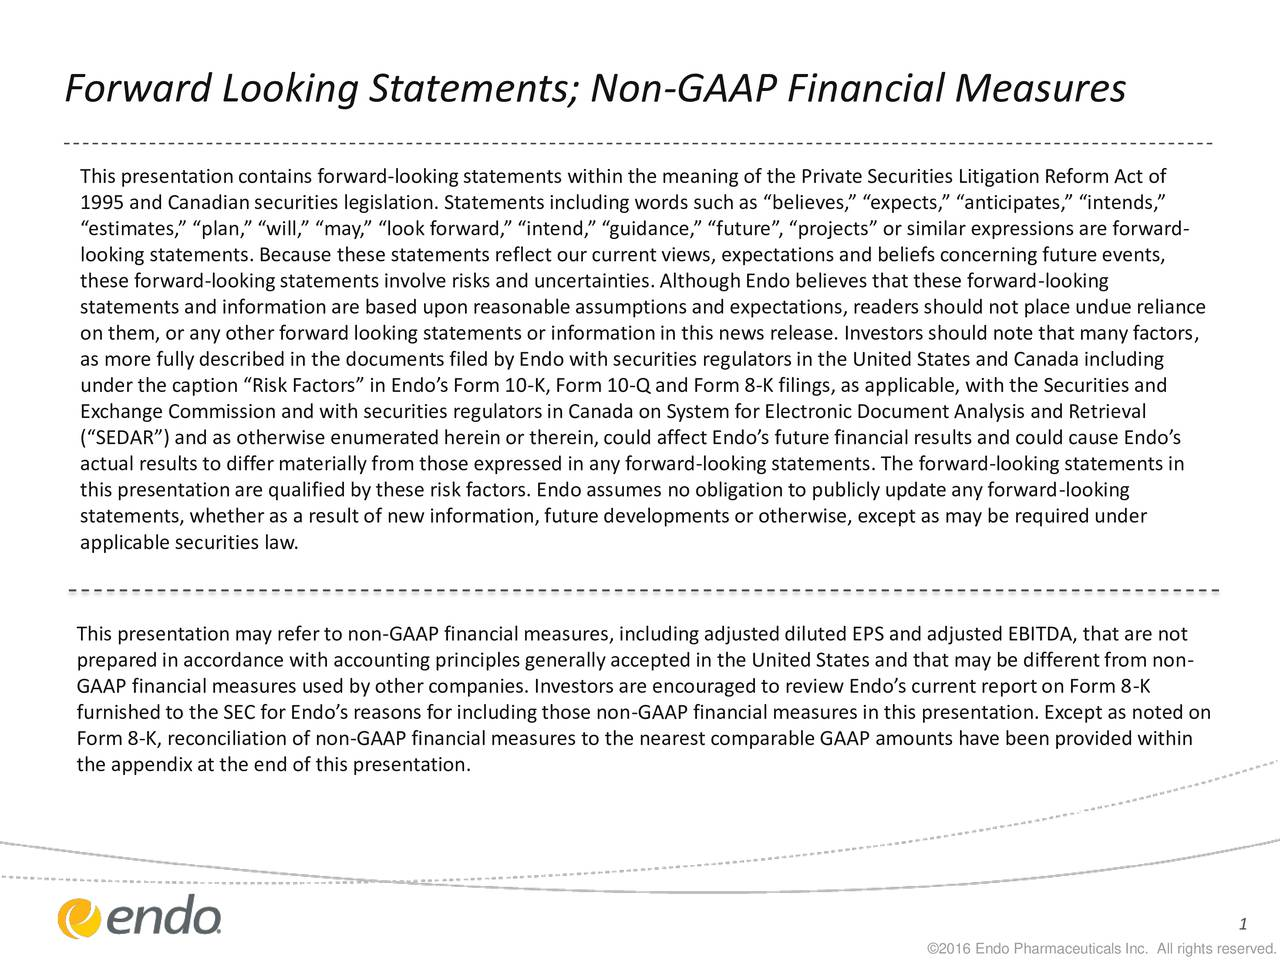 This presentationcontains forward-lookingstatements within the meaning of the Private Securities Litigation Reform Act of 1995 and Canadian securities legislation. Statementsincludingwords such as believes, expects, anticipates, intends, estimates, plan, will, may, look forward, intend, guidance, future,projects or similar expressions are forward- looking statements. Because these statements reflect our current views, expectations and beliefs concerning future events, these forward-lookingstatements involve risks and uncertainties.Although Endo believes that these forward-looking statements and information are based upon reasonable assumptions and expectations, readers should not place undue reliance on them, or any other forward looking statements or informationin this news release. Investors should note that many factors, as more fully described in the documents filed by Endo with securities regulatorsin the United States and Canada including under the caption Risk Factors in Endos Form 10-K, Form 10-Q and Form 8-K filings, as applicable, with the Securities and Exchange Commission and with securities regulatorsin Canada on System for Electronic Document Analysis and Retrieval (SEDAR) and as otherwise enumeratedherein or therein,could affect Endos future financial results and could cause Endos actual results to differmaterially from those expressed in any forward-lookingstatements. The forward-lookingstatements in this presentationare qualifiedby these risk factors. Endo assumes no obligation to publiclyupdate any forward-looking statements, whether as a result of new information,future developments or otherwise, except as may be requiredunder applicable securities law. This presentationmay refer to non-GAAP financial measures, includingadjusteddiluted EPS and adjusted EBITDA, that are not preparedin accordance with accounting principles generally accepted in the United States and that may be differentfrom non- GAAP financial measures used by other companies. Inve